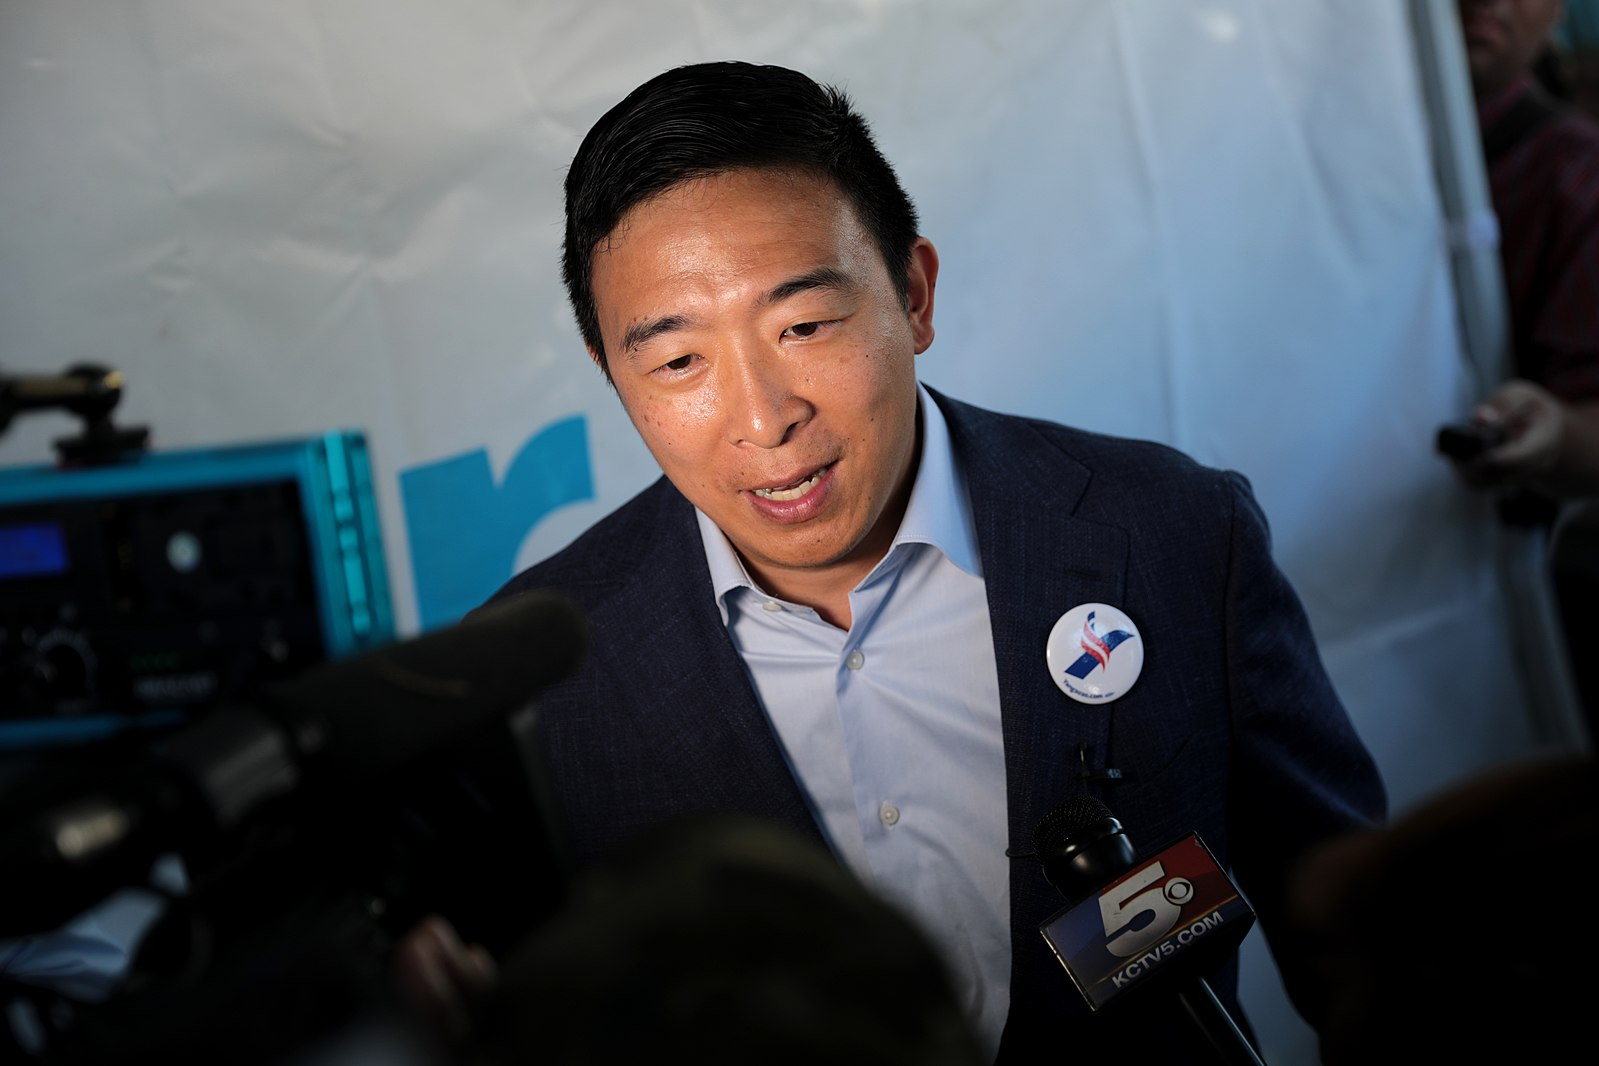 Andrew Yang: A new approach to American politics